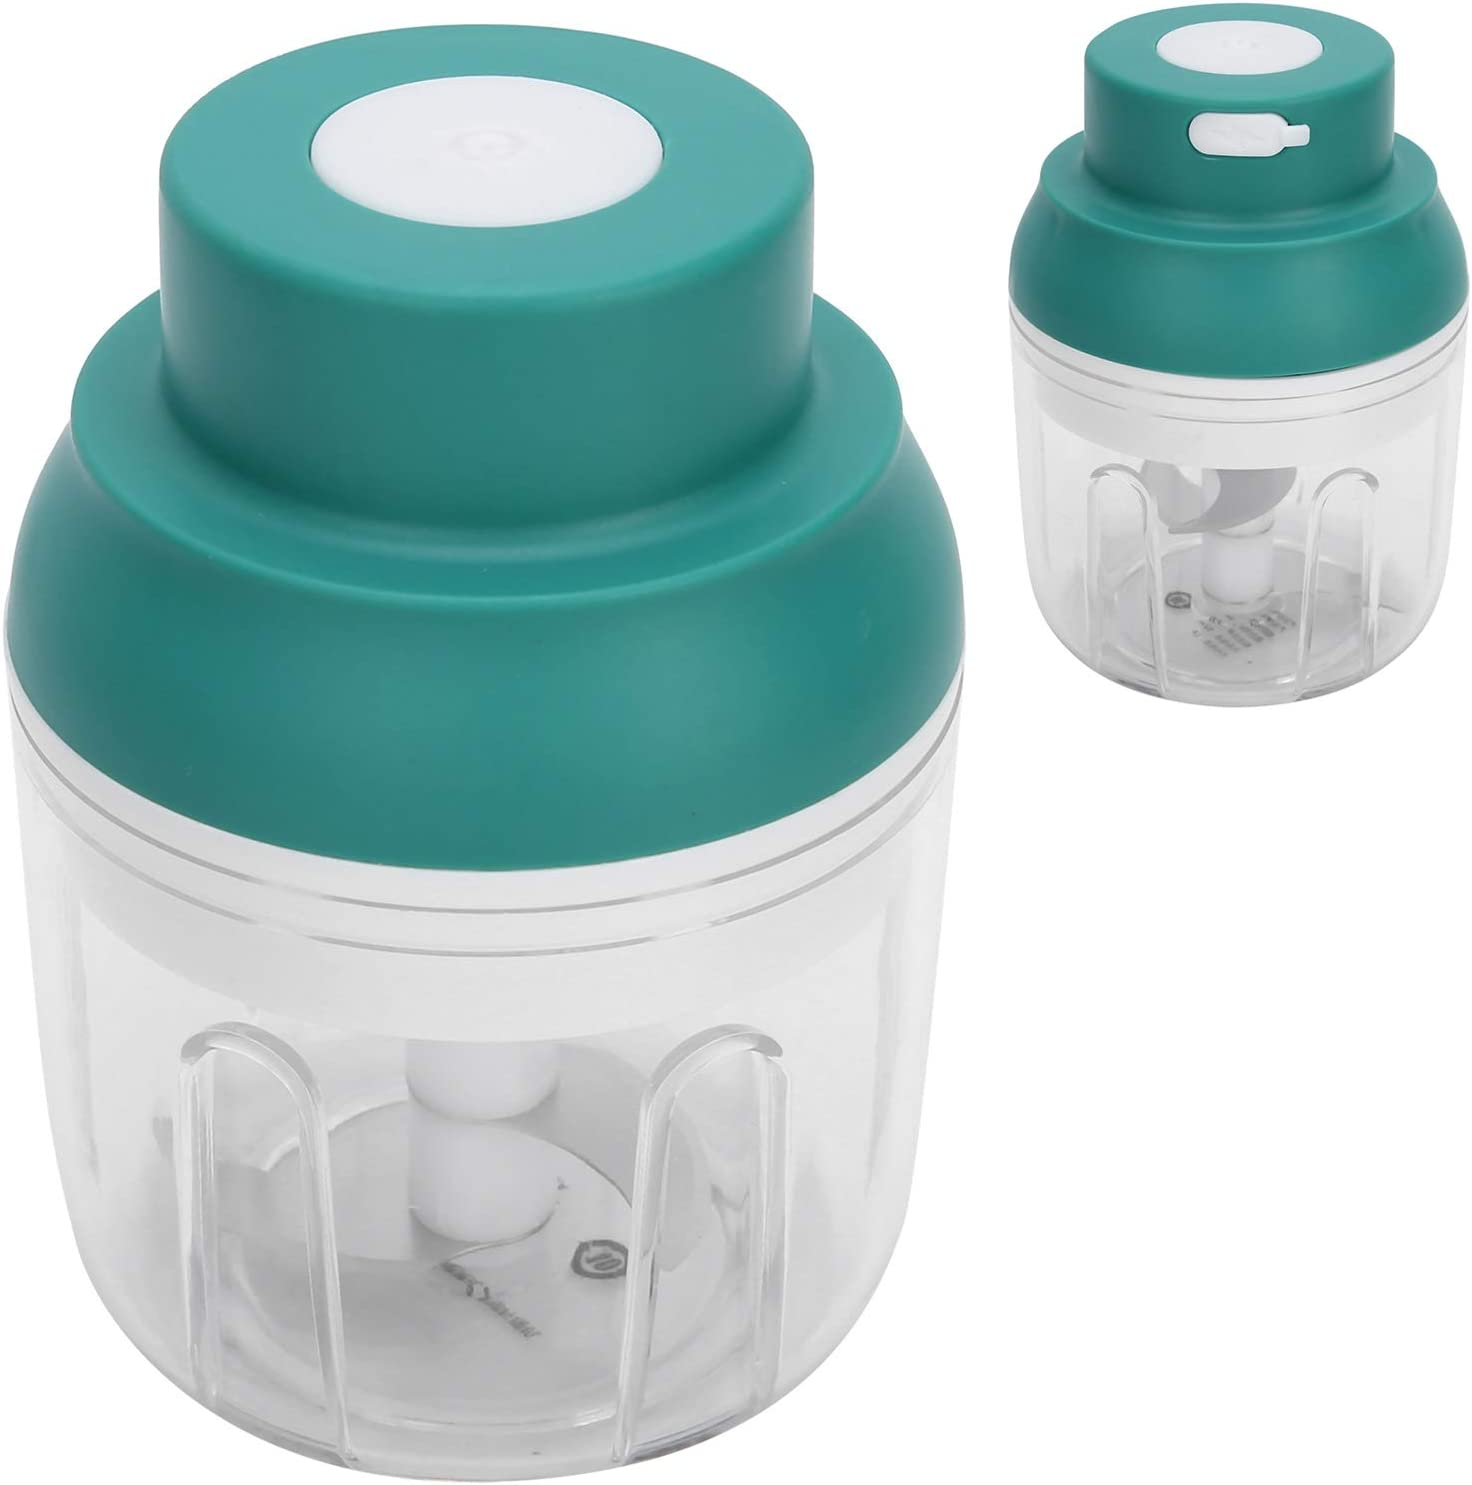 Mini Animer and price revision Chopper Food Processor Proces Design Transparent Cheap super special price with